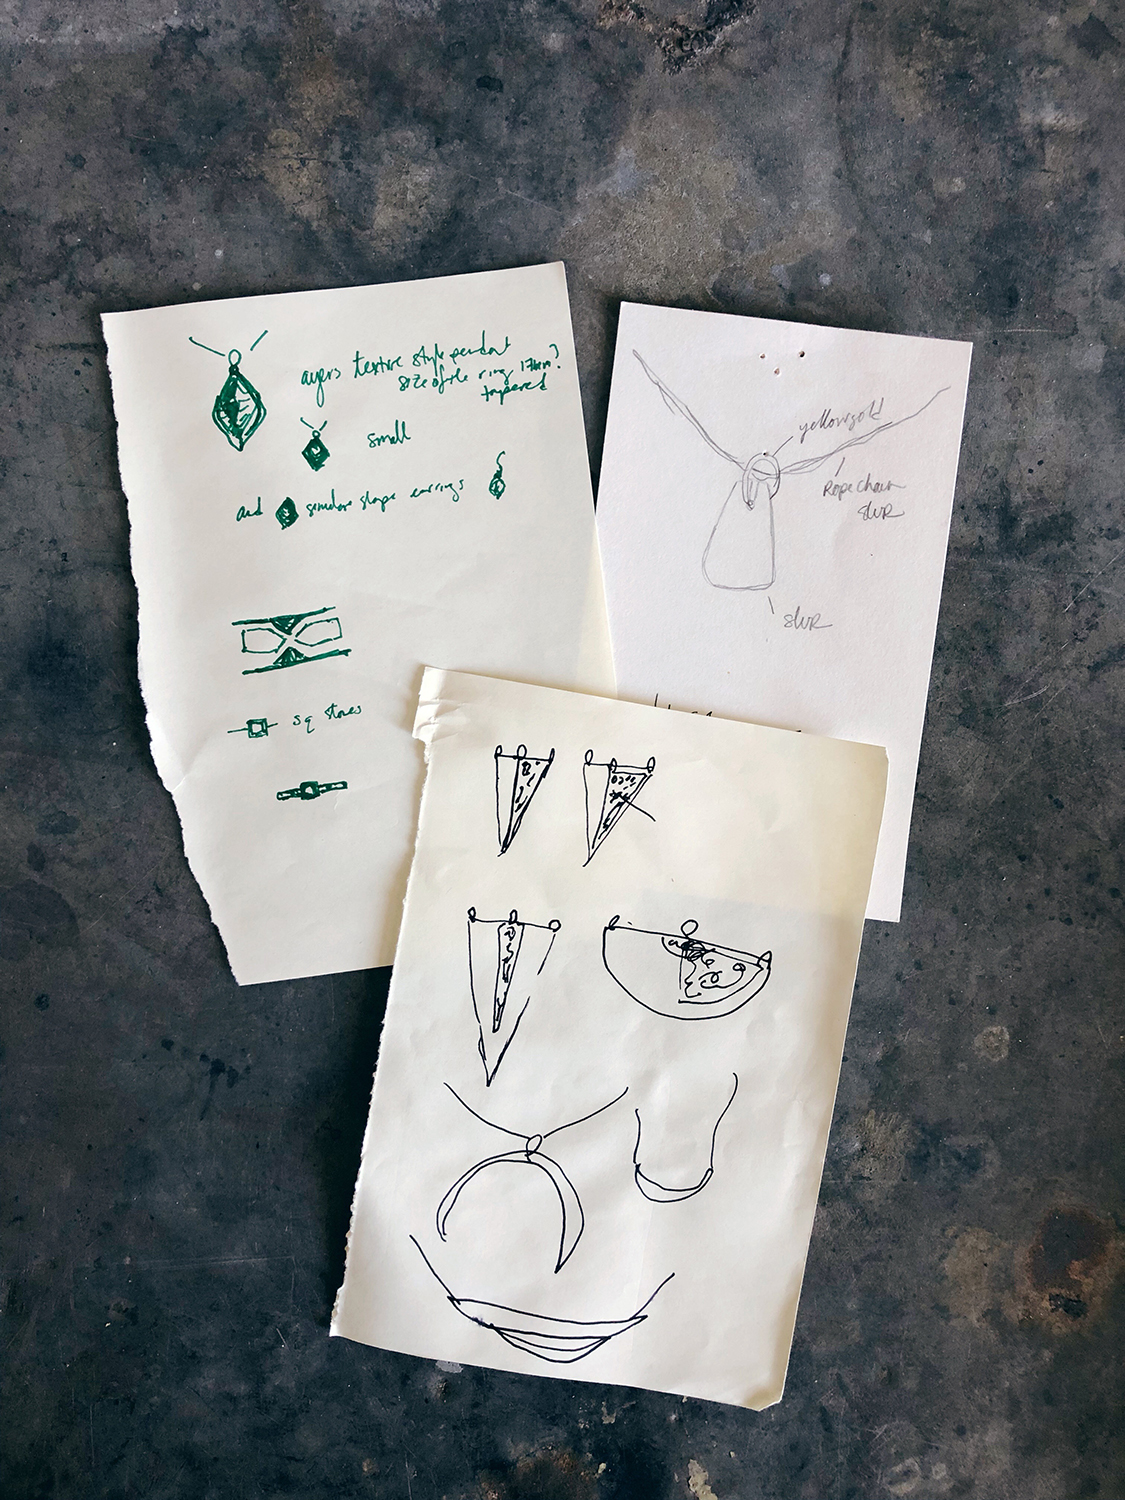 old jewelry sketches circa 2014-2015